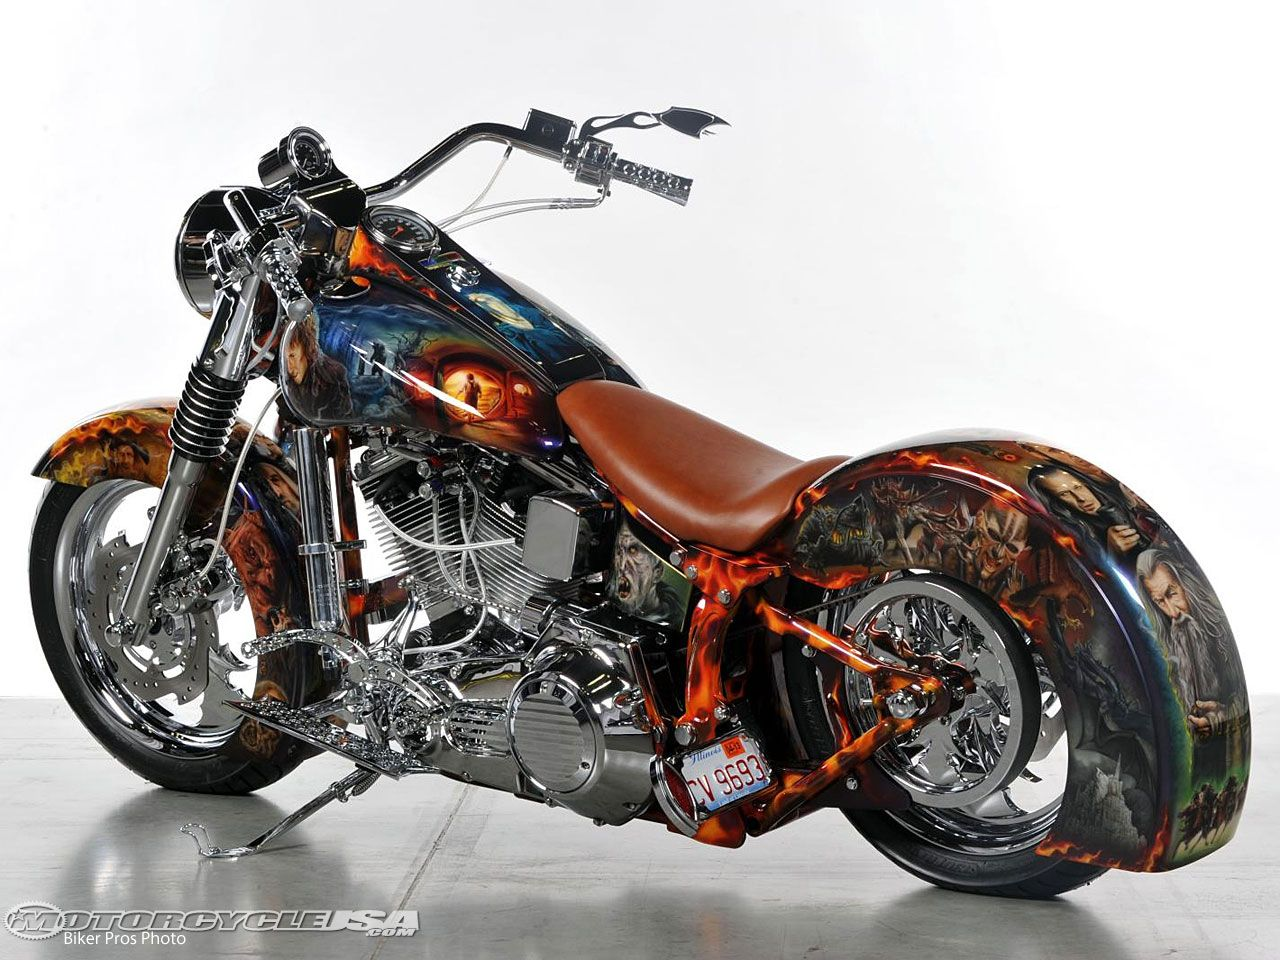 The Ultimate Builder Custom Bike Show presented by J&P